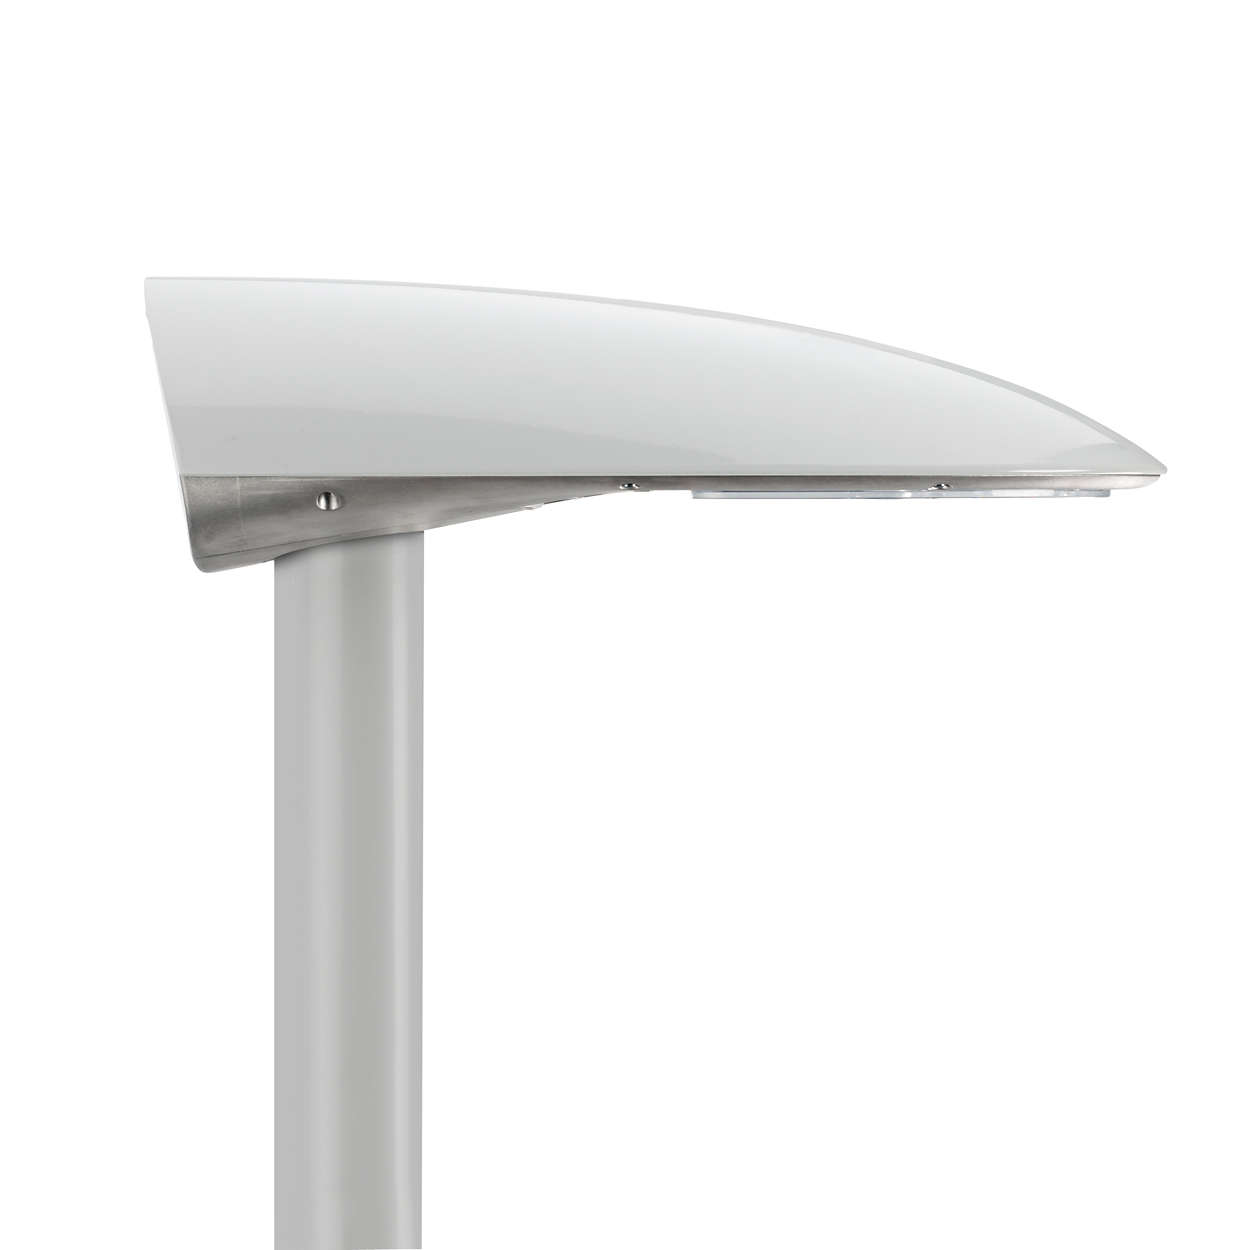 Iridium gen3 – The connected intelligent 'plug & play' road luminaire